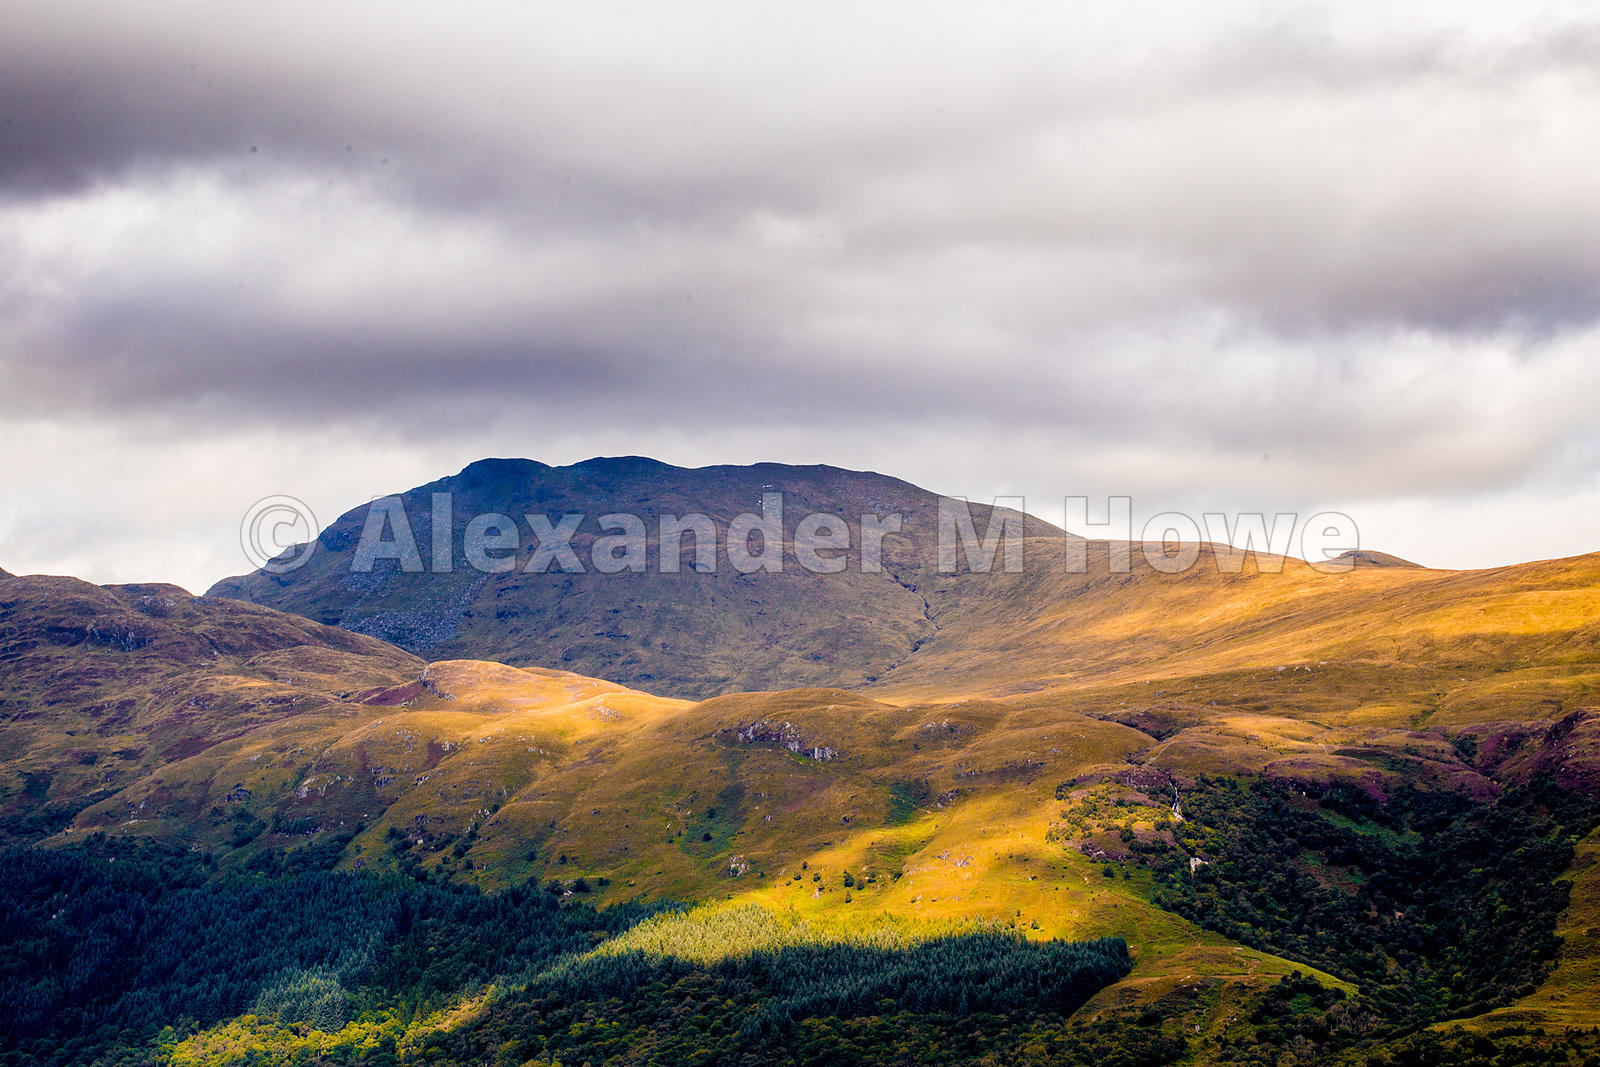 Contours and Light on Hills Around Loch Lomond Scotland